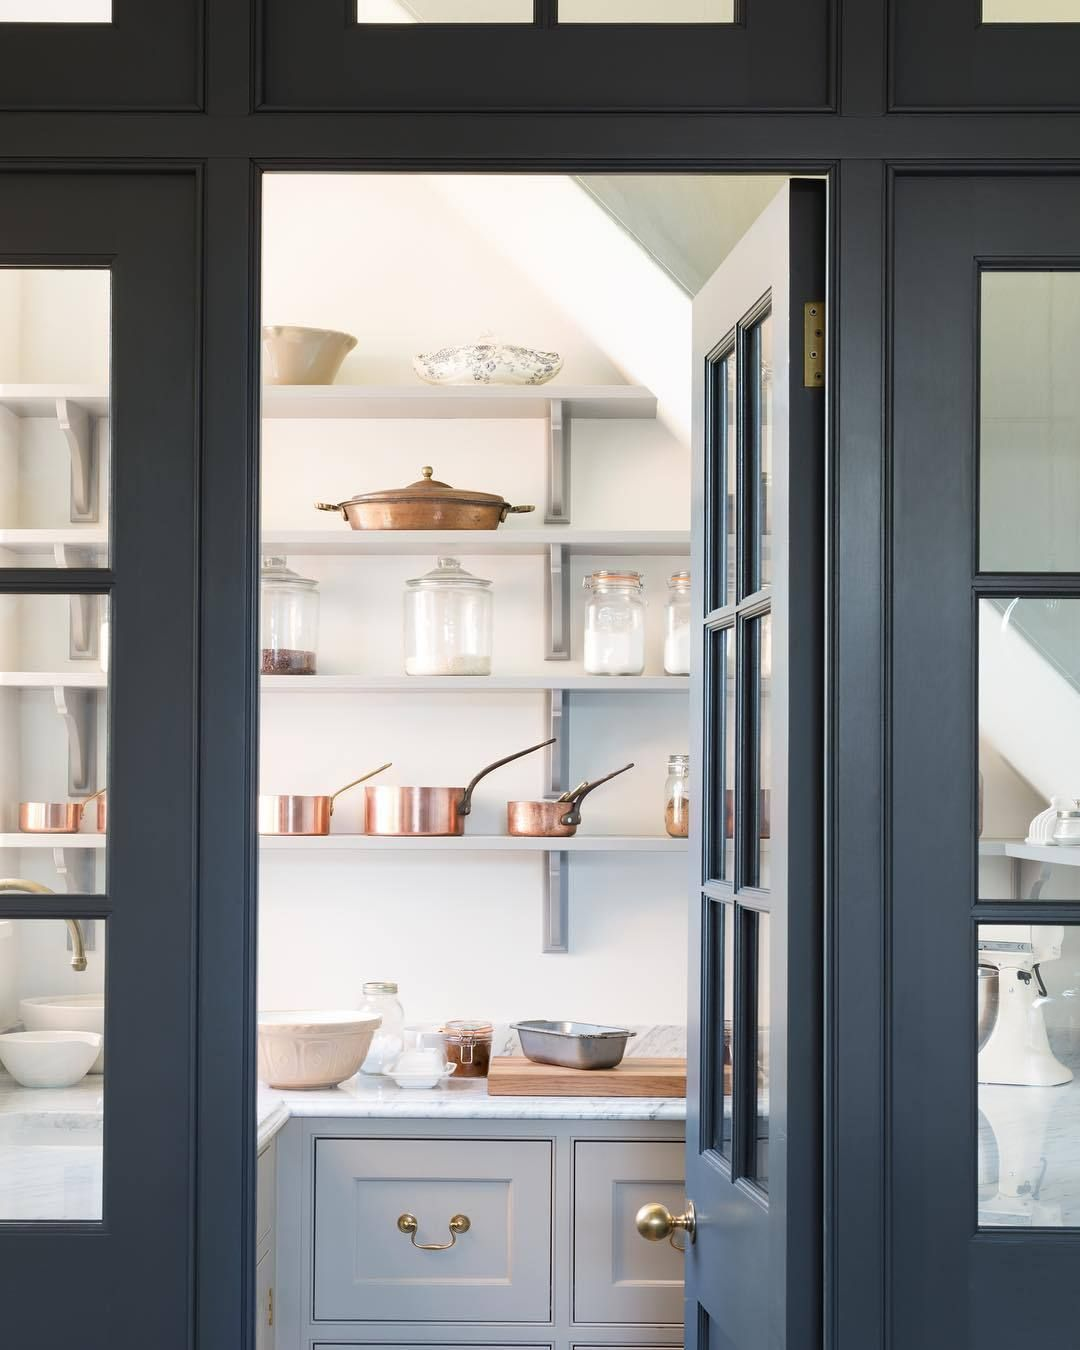 The Elegant Home Chic And Sophisticated February 24 2018 Zsazsa Bellagio Like No Other Pantry Design Kitchen Pantry Design Kitchen Design